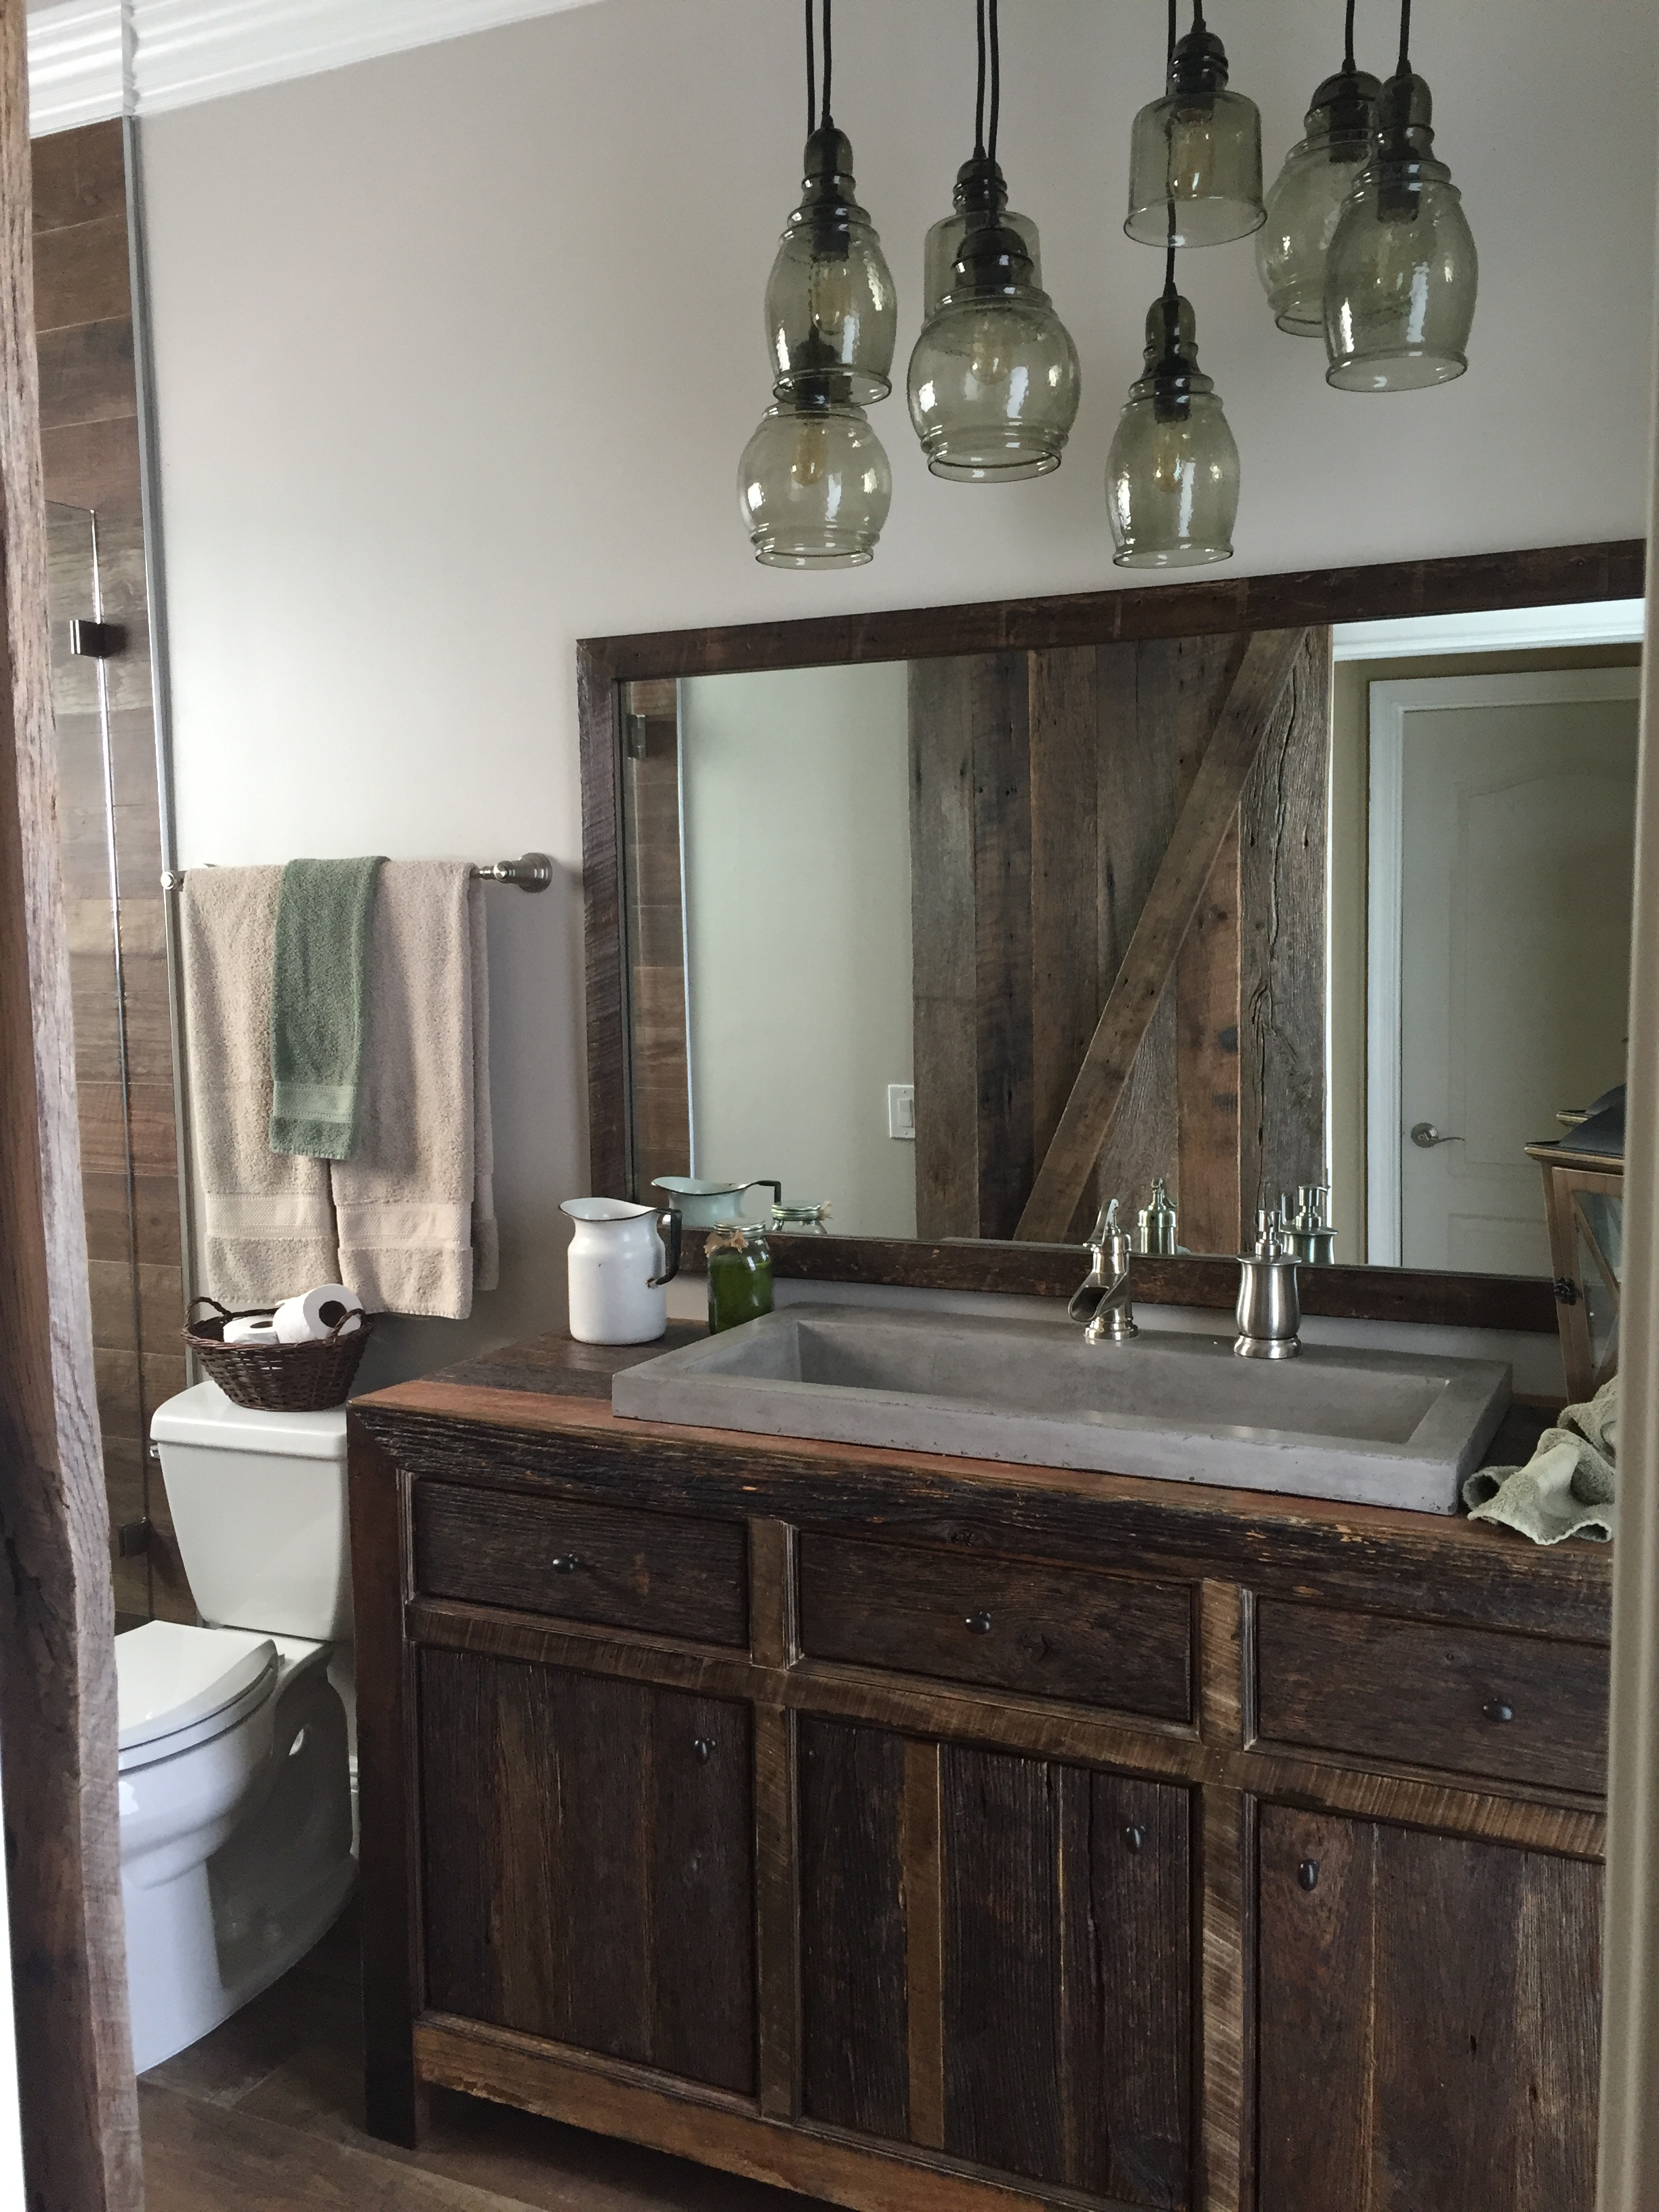 Robbieu0027s Rustic Reclaimed Wood Bathroom Vanity